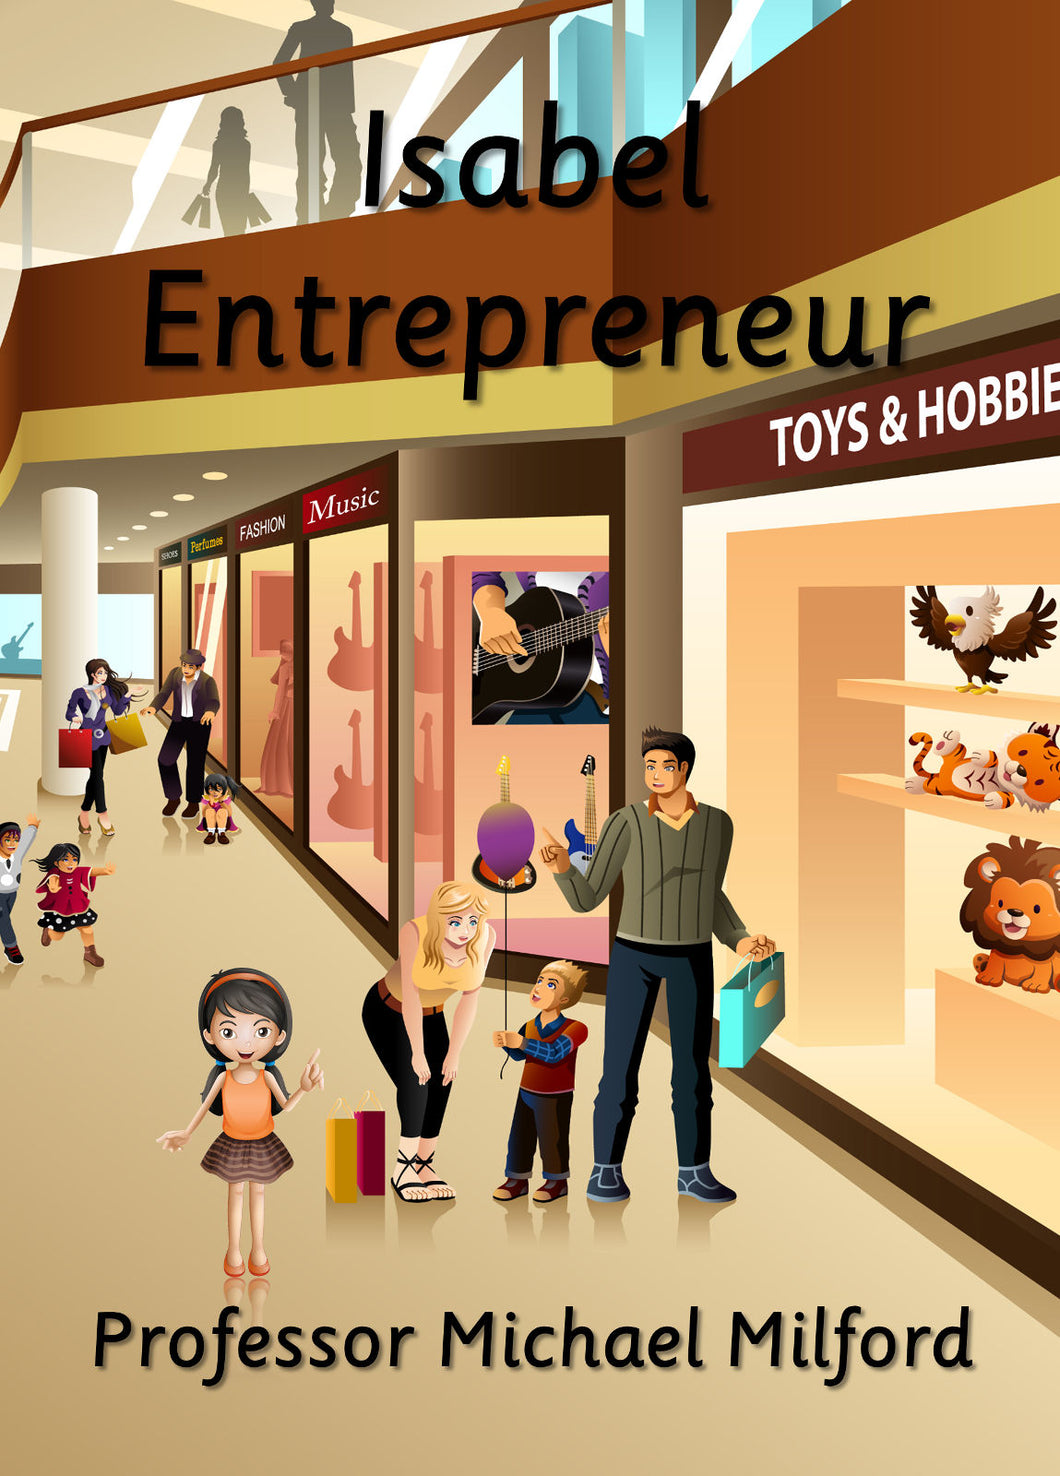 Isabel Entrepreneur (E-book only)